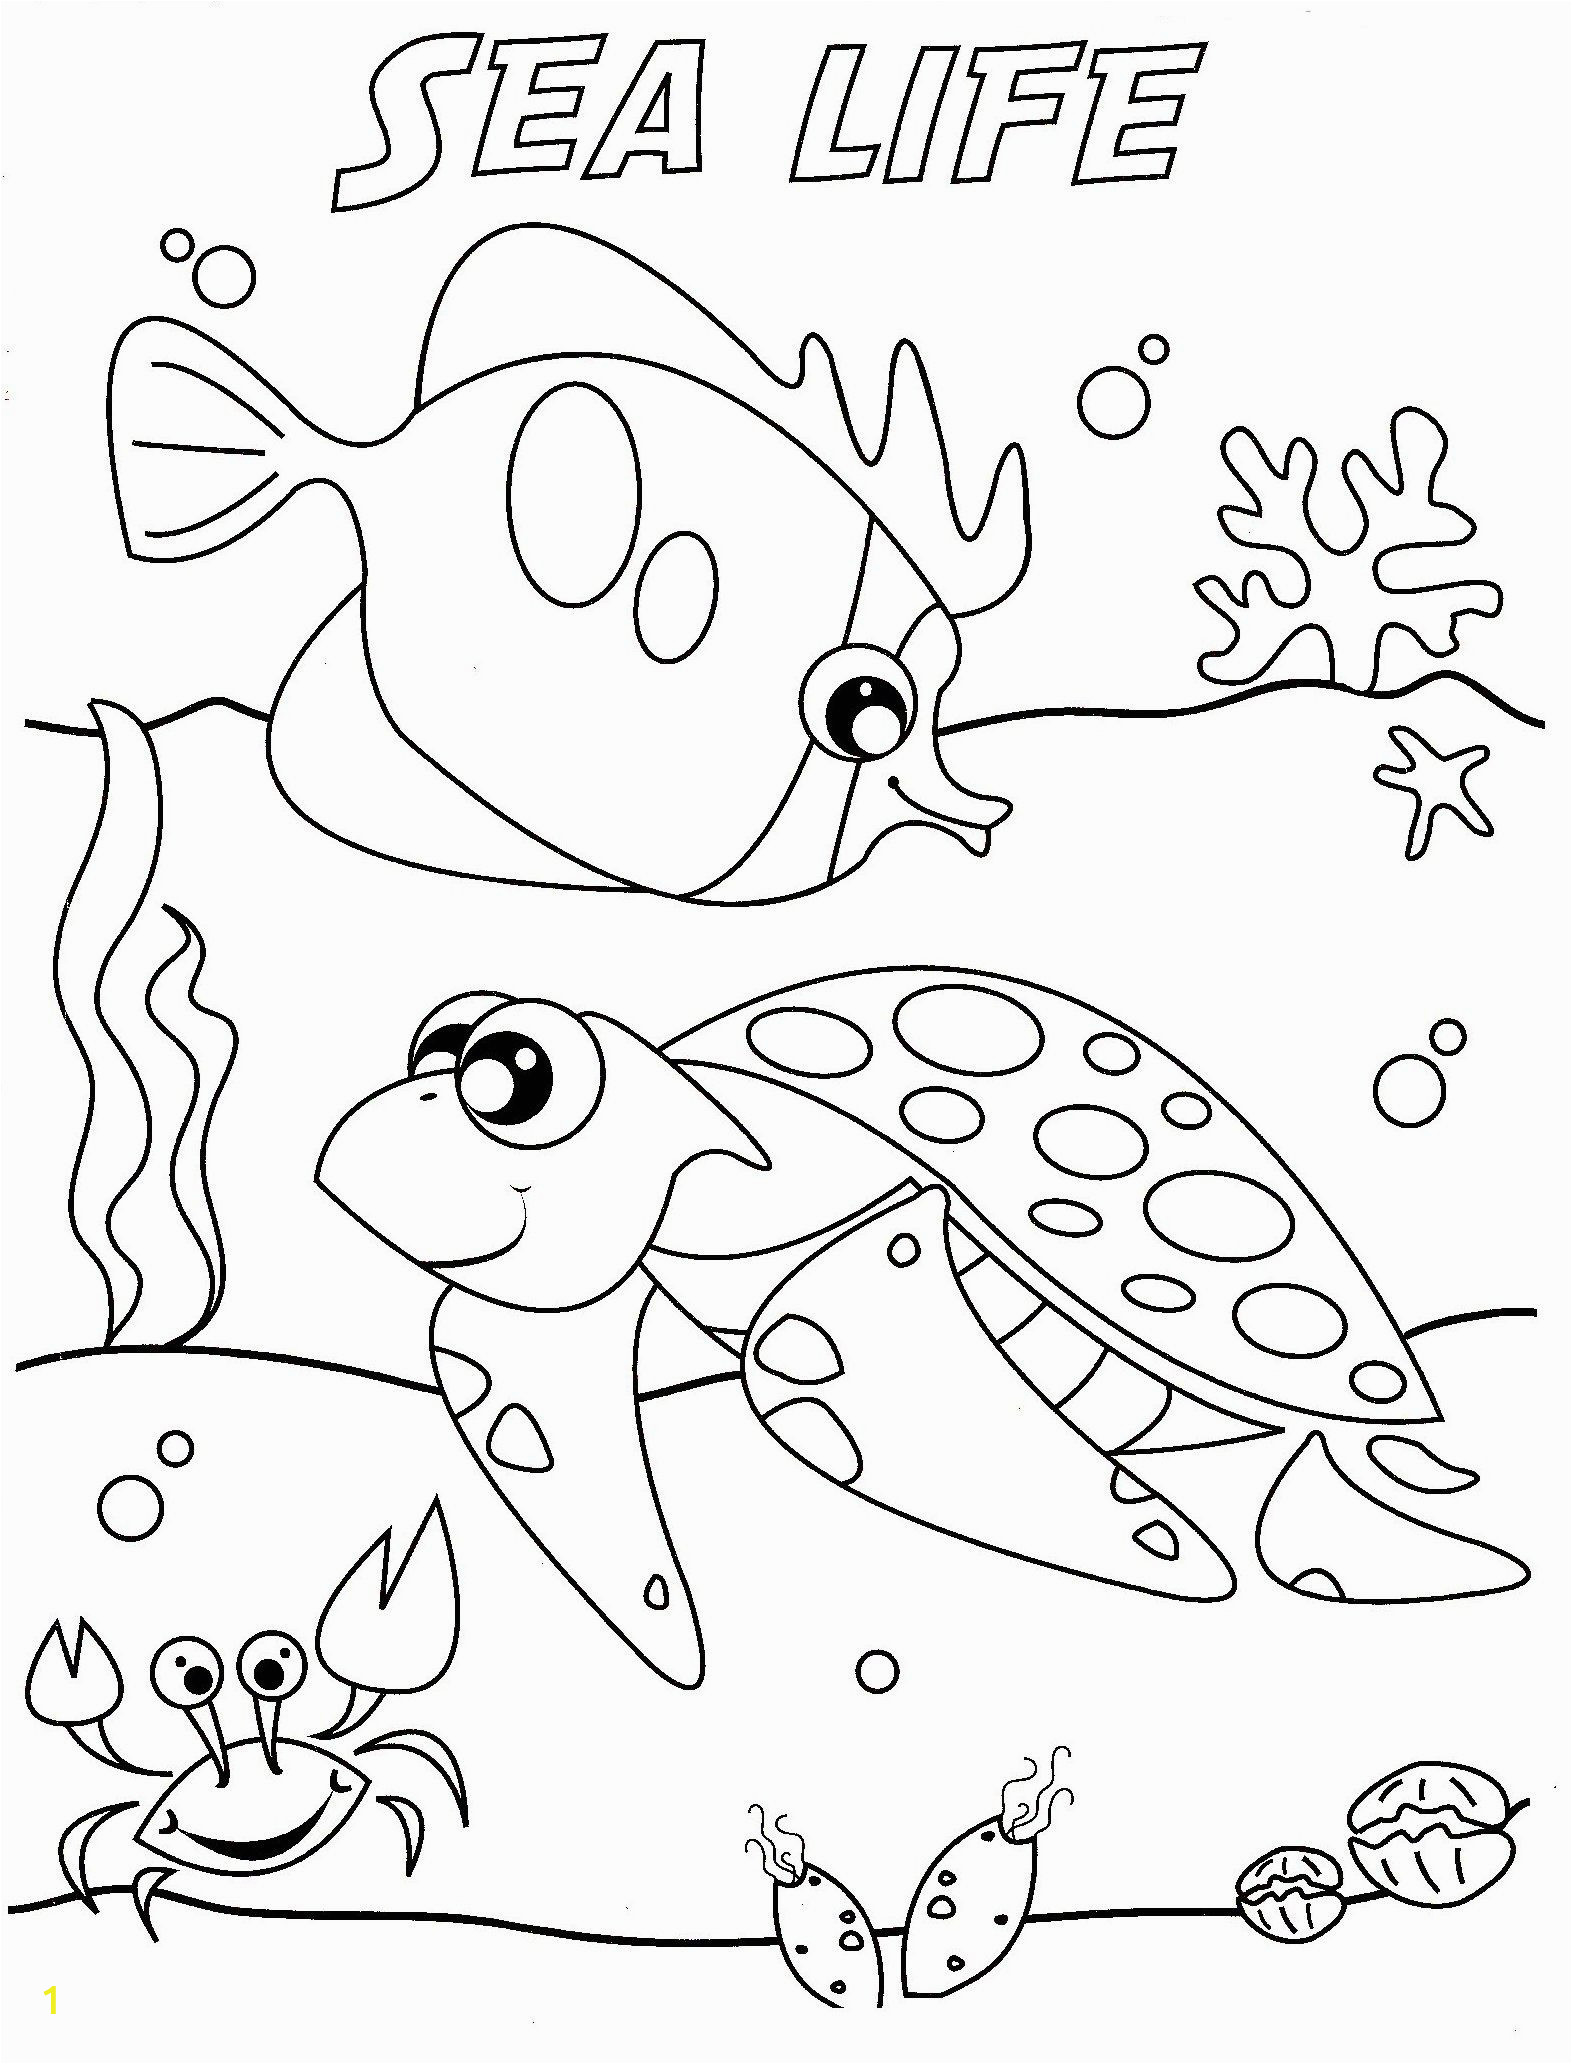 free ocean coloring pages withoutnloading printable for kids to print adults